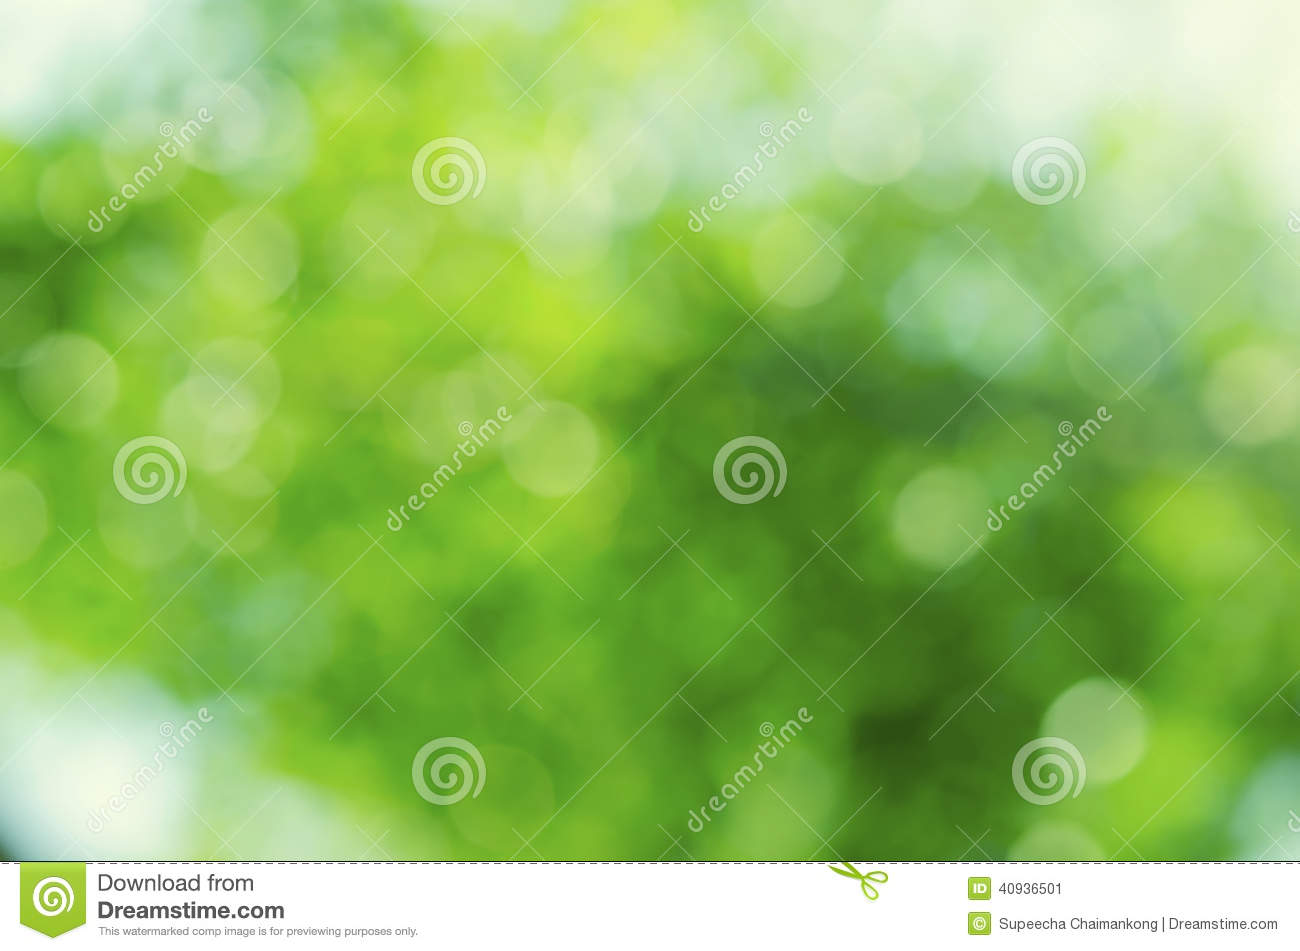 Green bokeh abstract backgrounds.